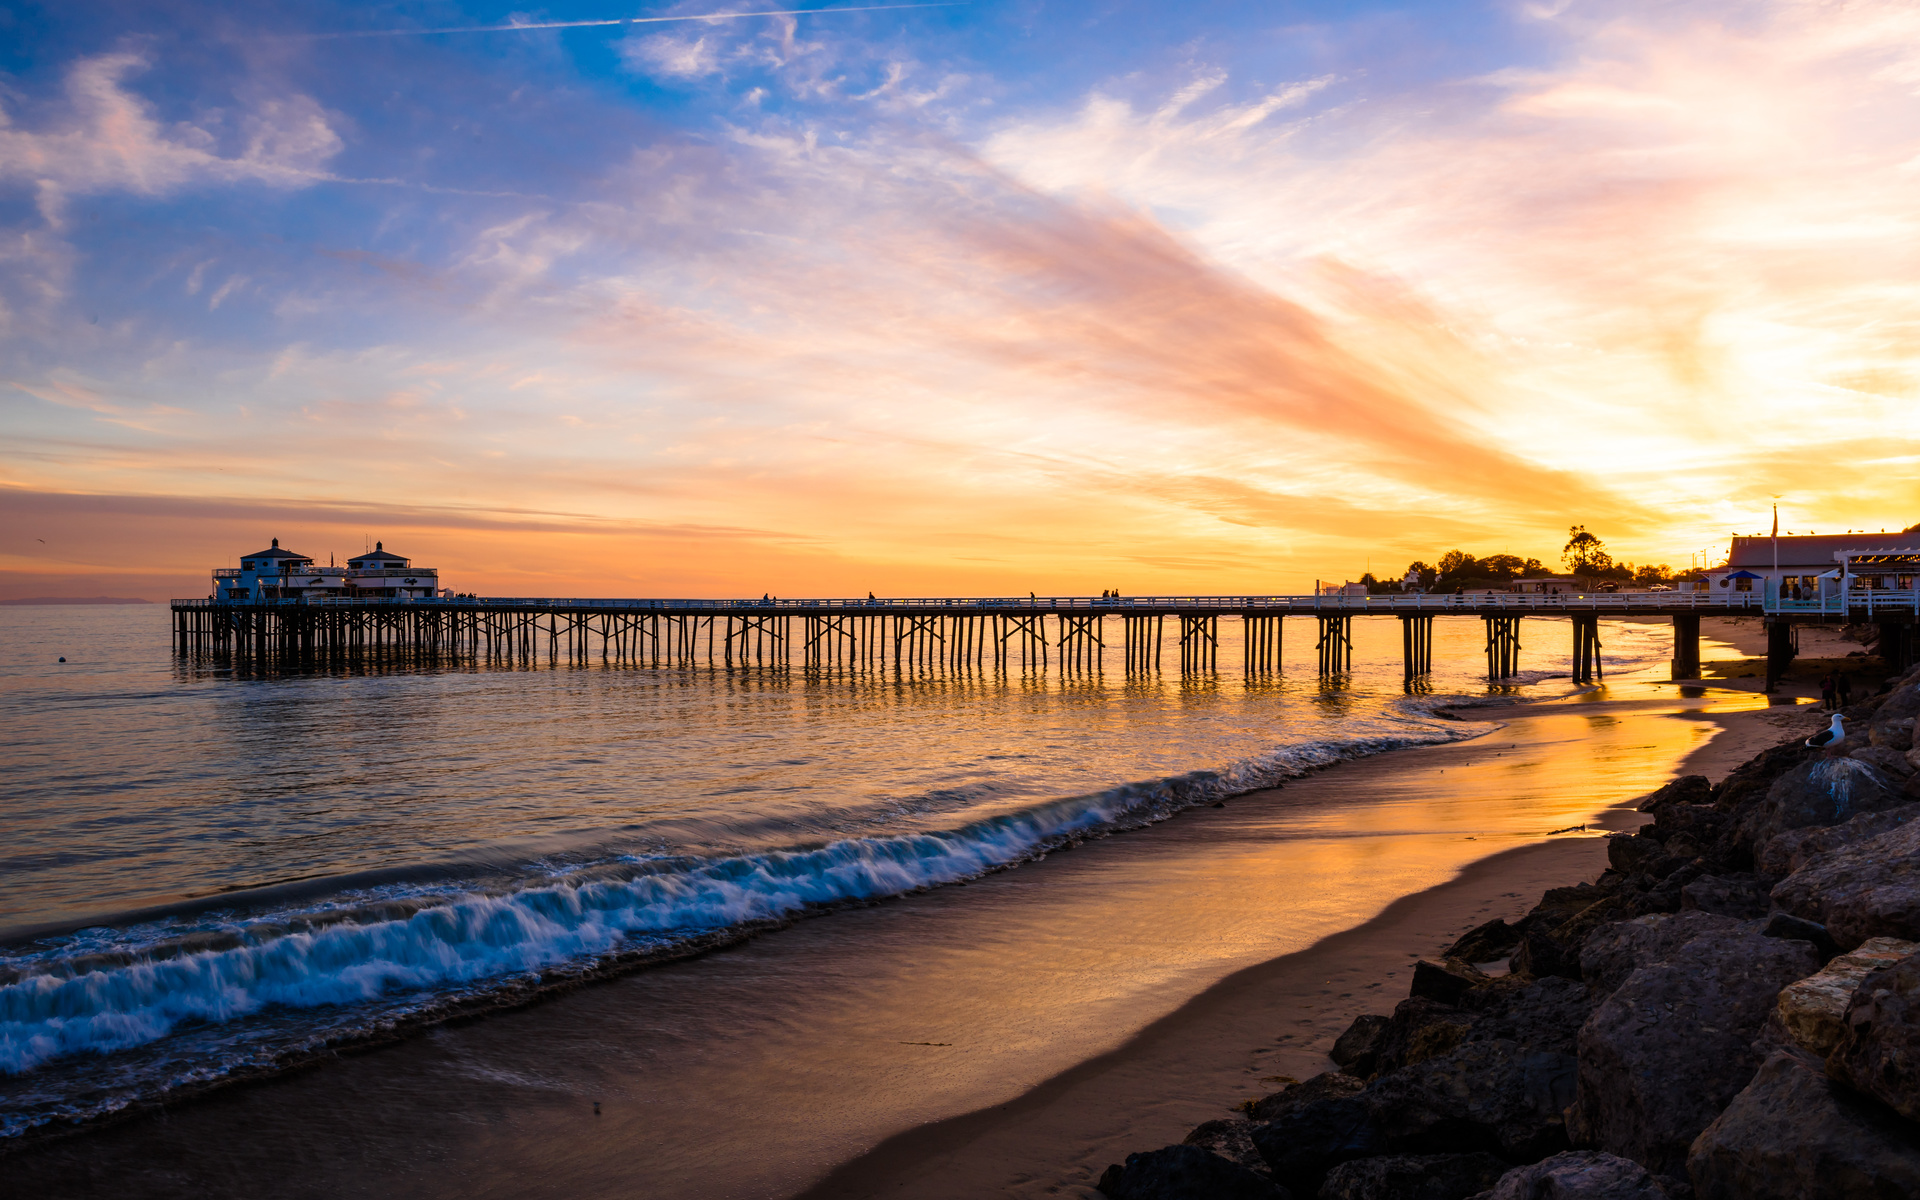 malibu, sea, sunset, shore, pearce, landscape